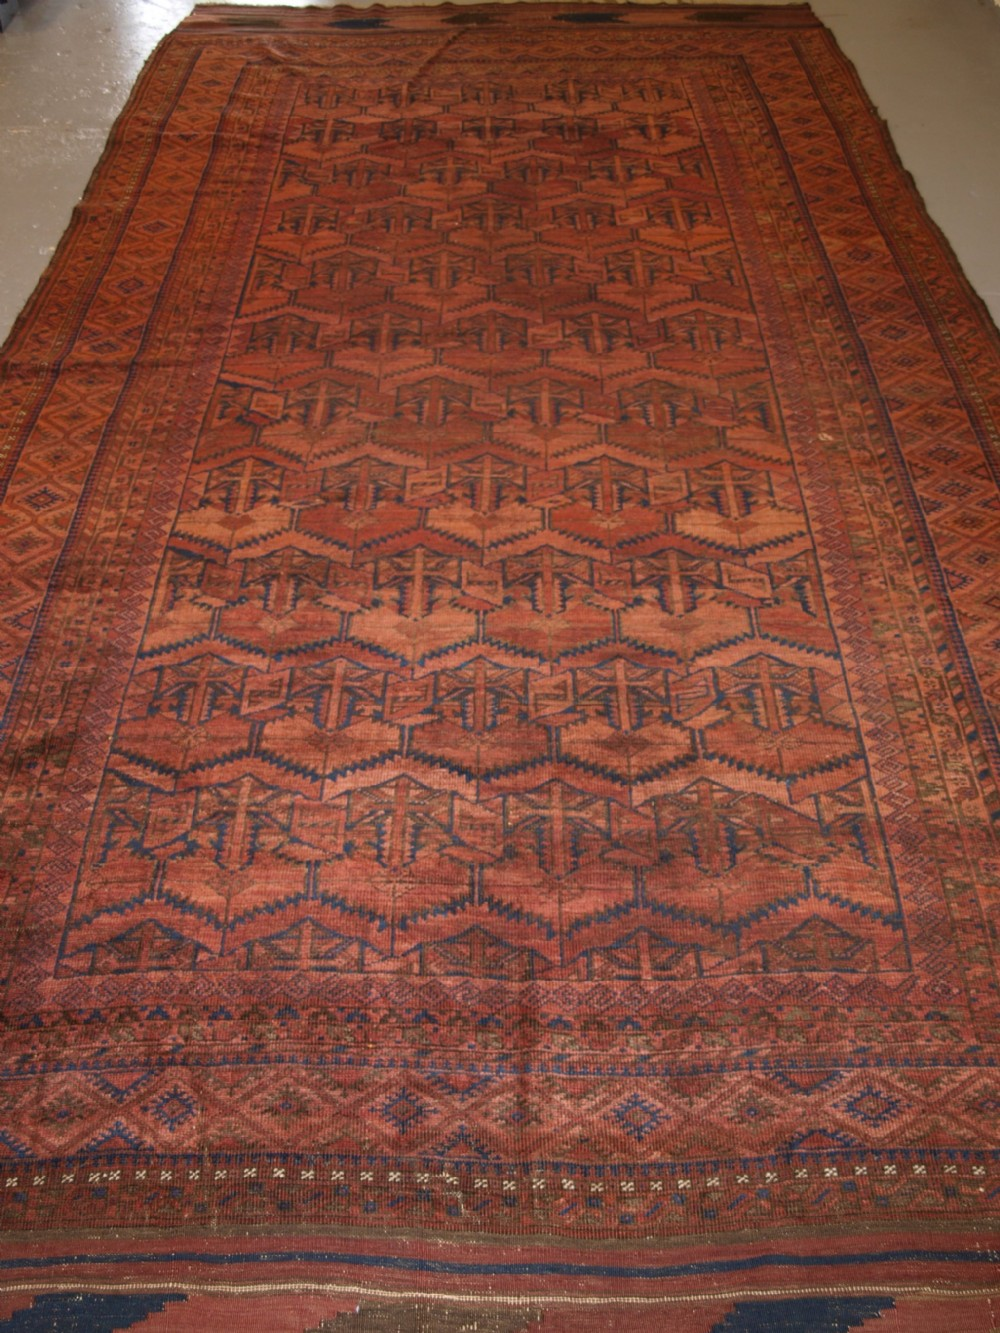 antique baluch main carpet chakhansur region south east afghanistan late 19th century